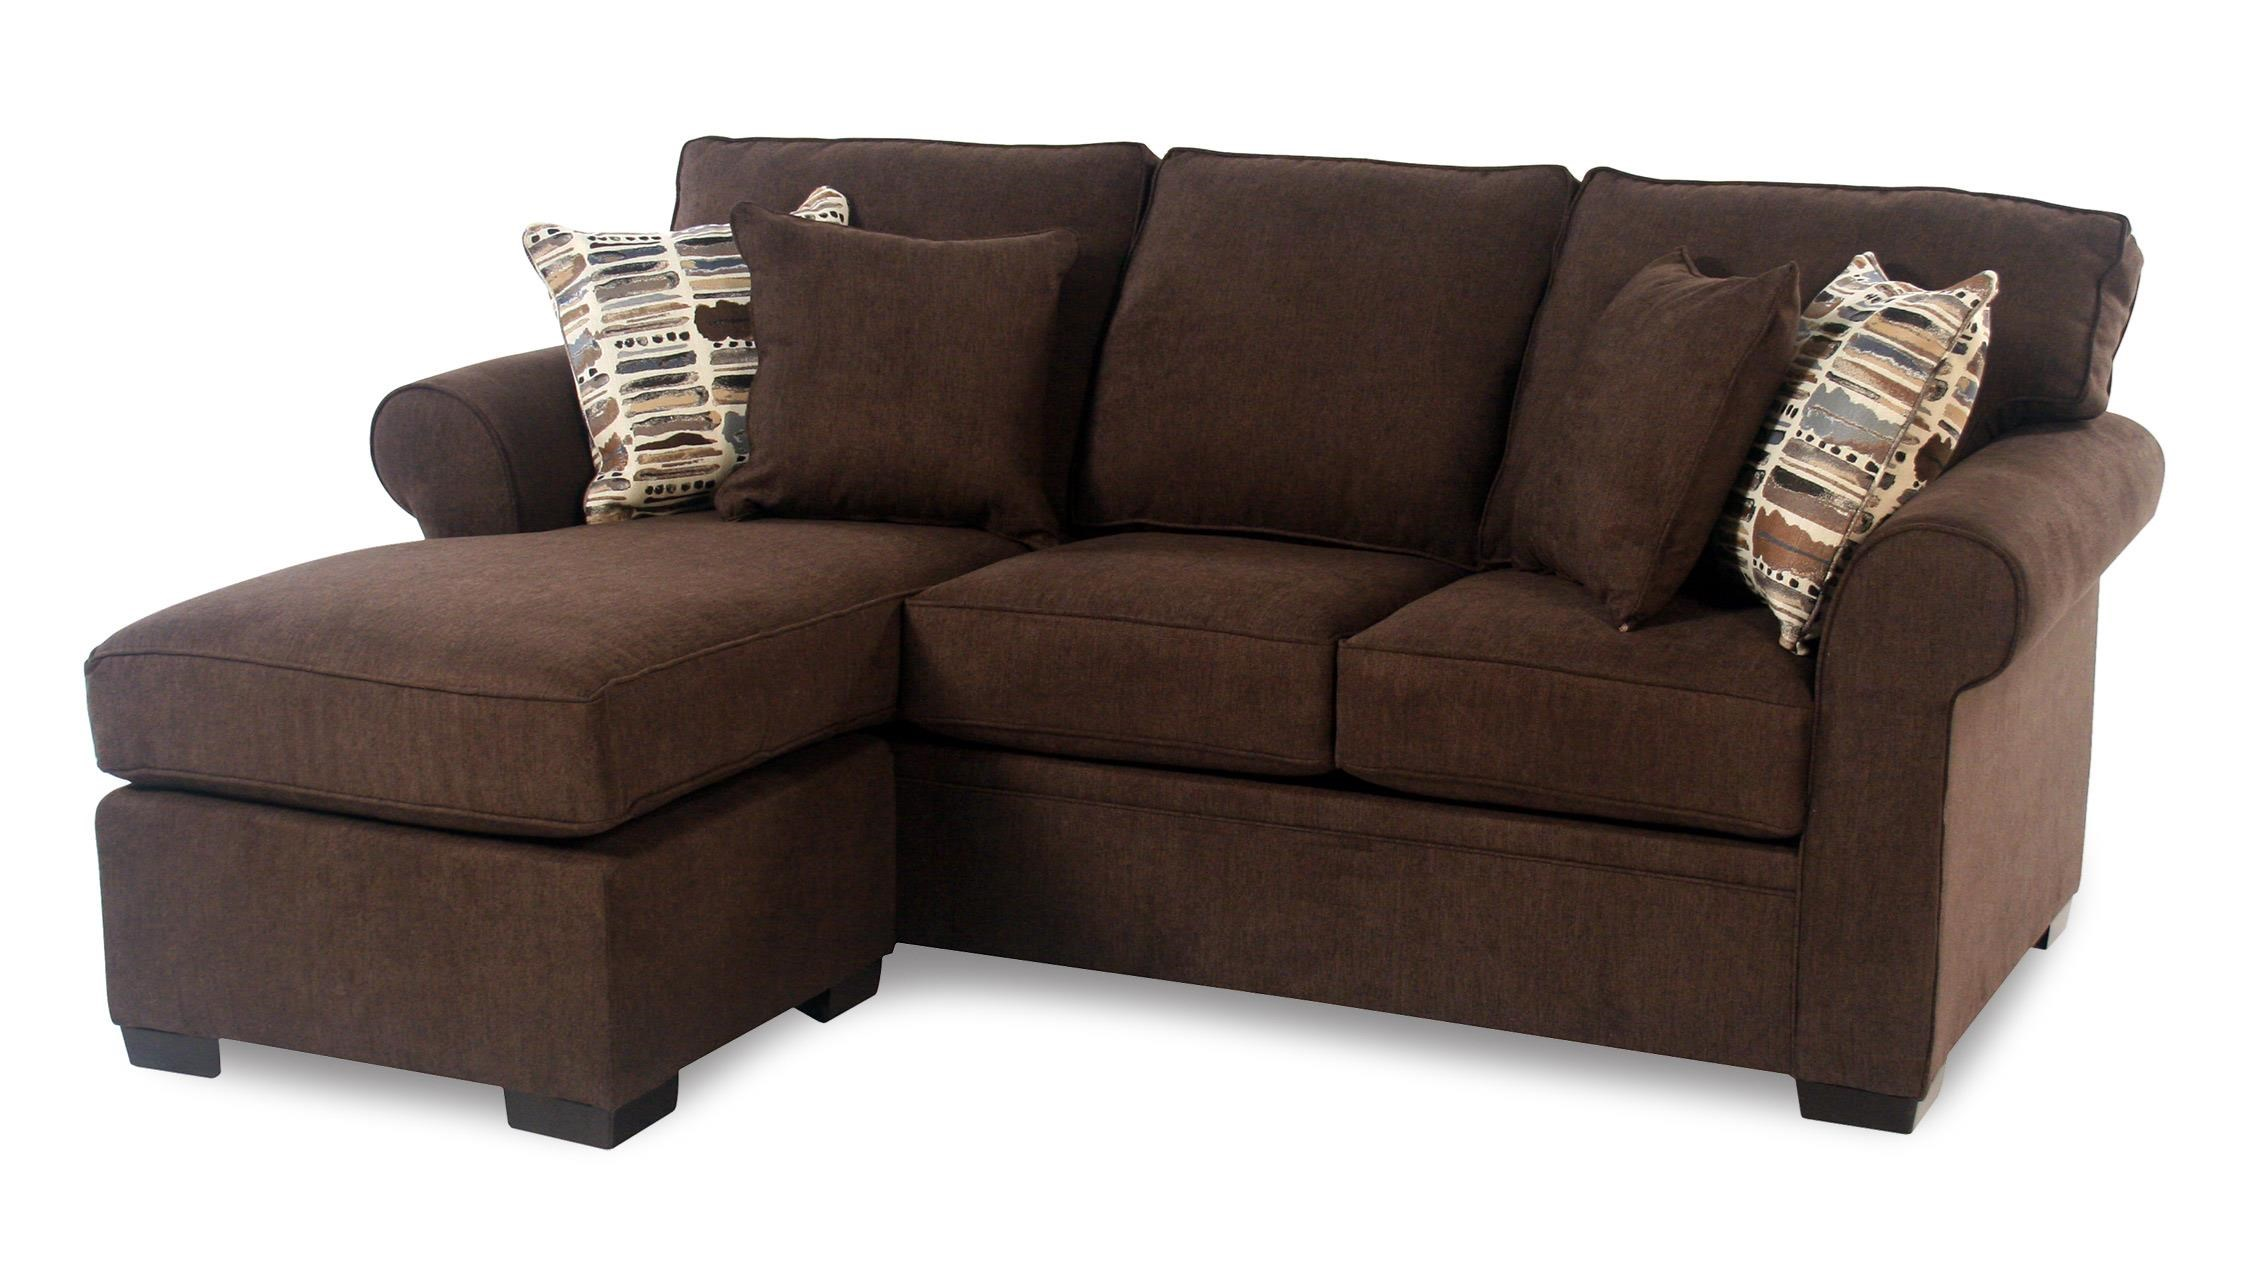 Queen Sleeper Chaise Sectional